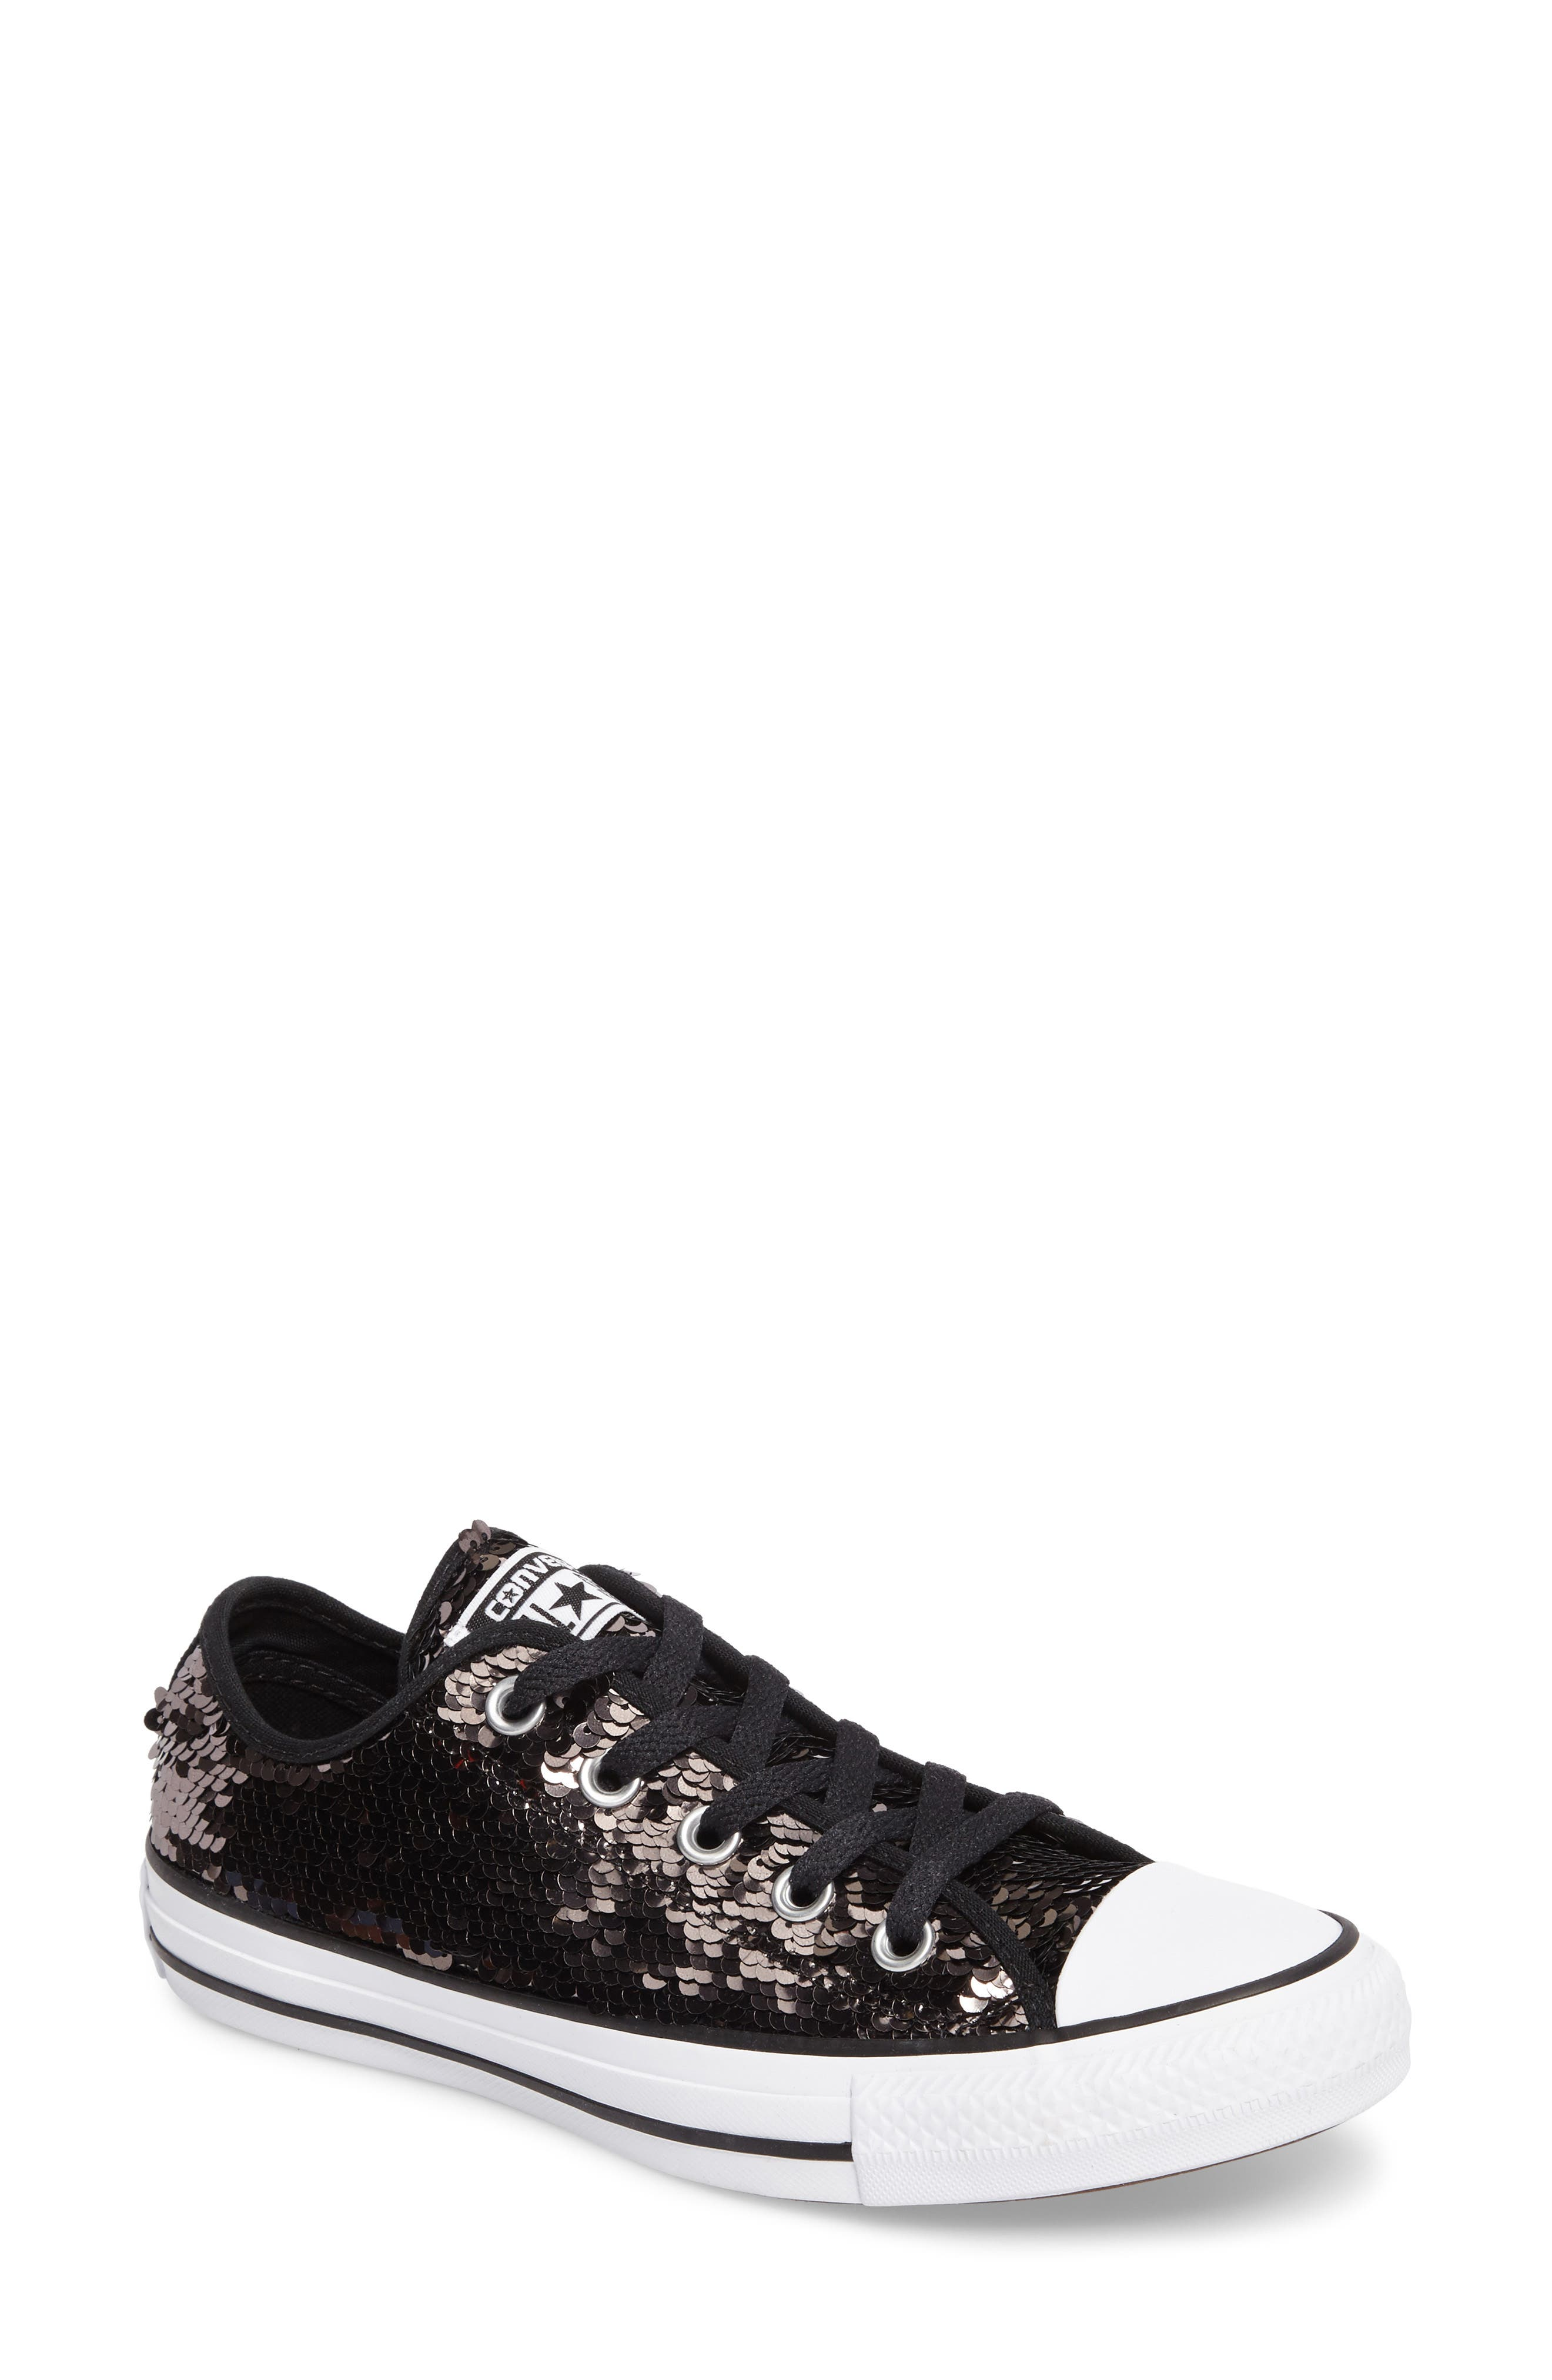 Chuck Taylor<sup>®</sup> All Star<sup>®</sup> Sequin Low Top Sneaker,                             Main thumbnail 1, color,